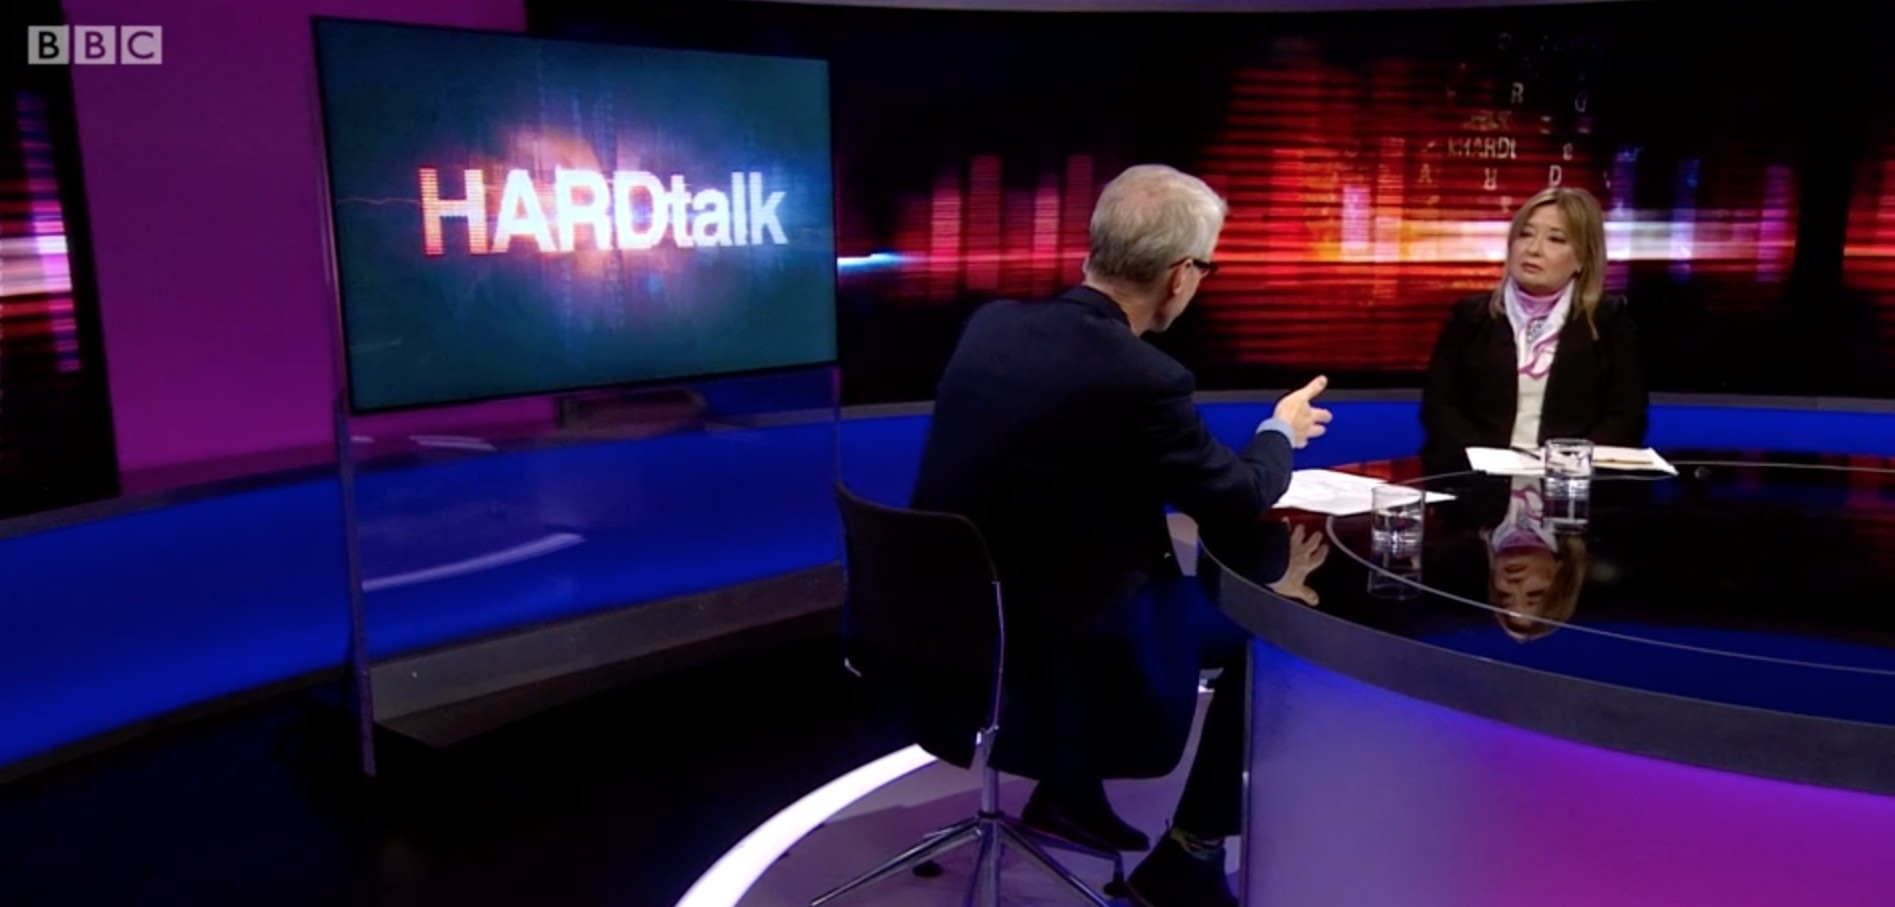 A screengrab from the episode of BBC's HardTalk